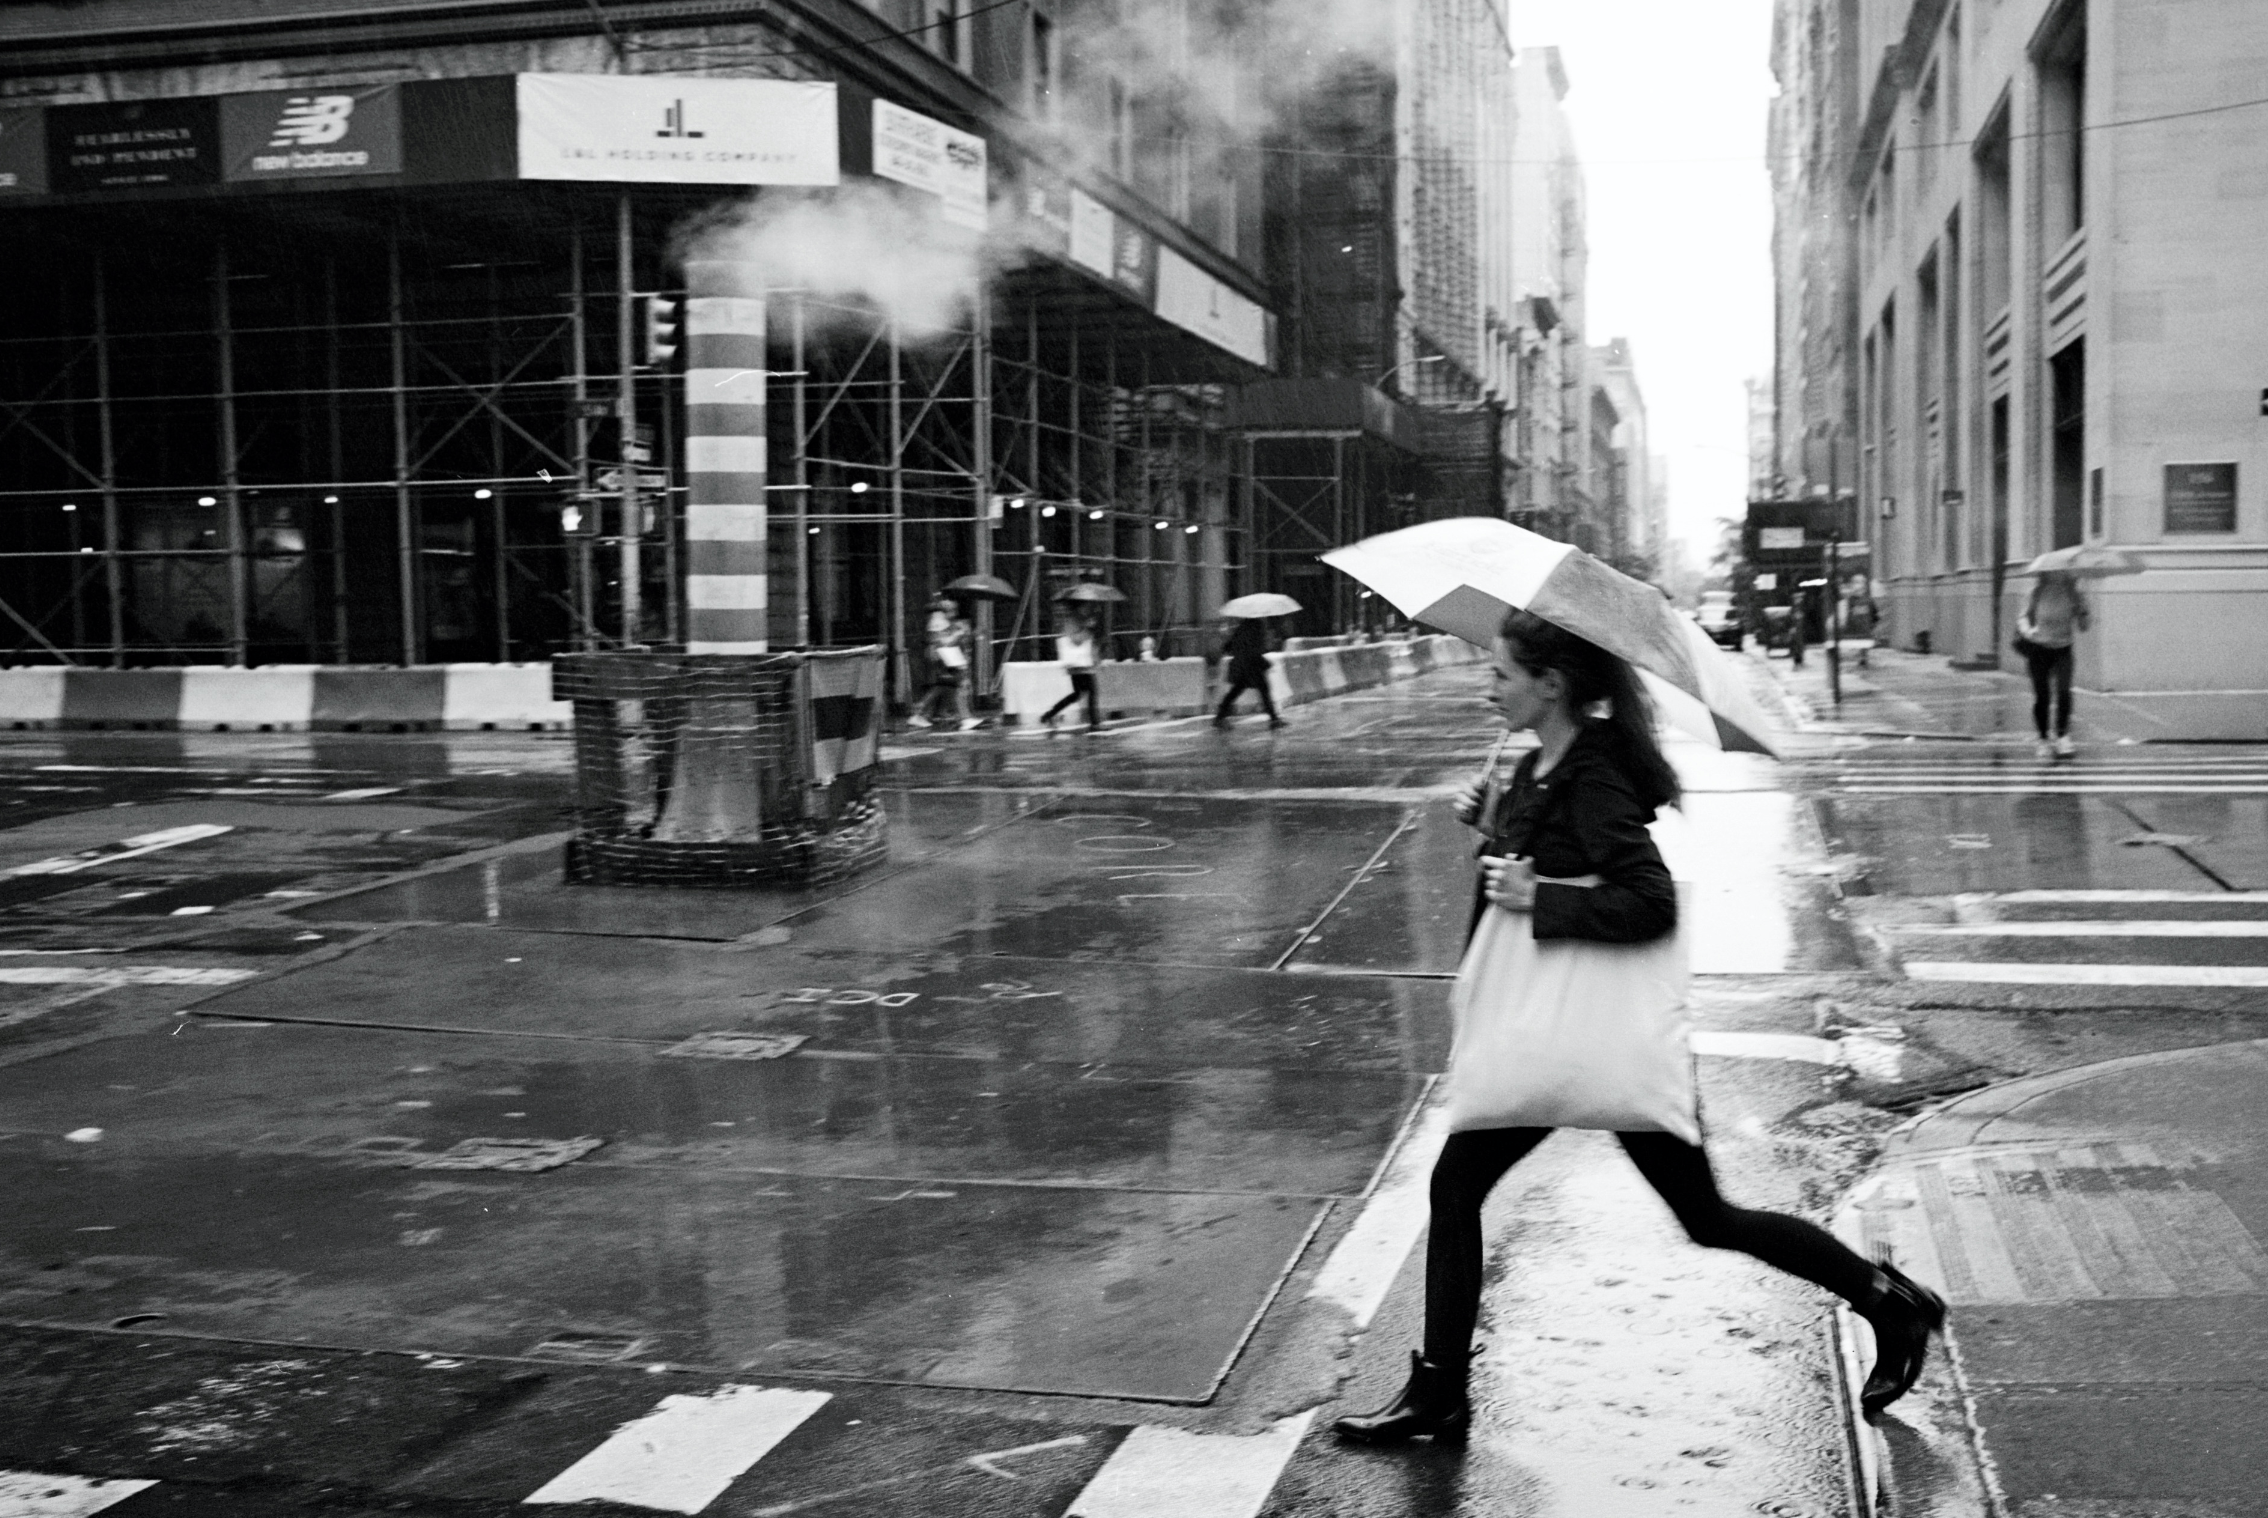 A rainy day in New York City (Leica M6 + Leica 35mm Summilux 1.4 ASPH FLE + Ilford XP2)